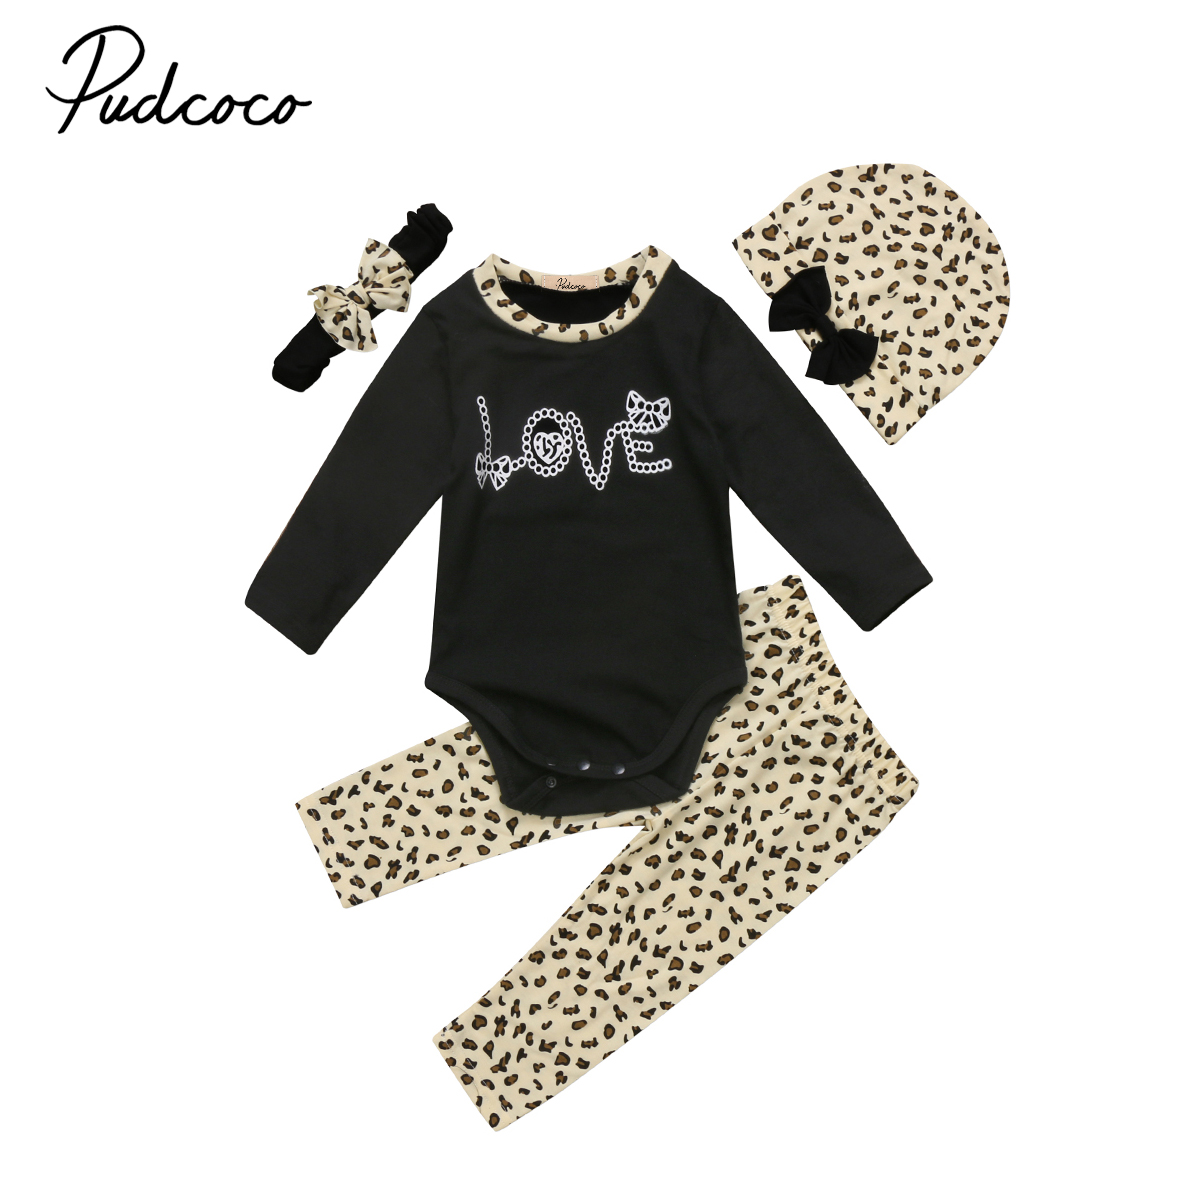 Toddler Clothinf Set Baby Girls Long Sleeve Bodysuit+Leopard Pants+Headband+Hat Clothes 4pcs Outfits Set 2pcs set newborn floral baby girl clothes 2017 summer sleeveless cotton ruffles romper baby bodysuit headband outfits sunsuit